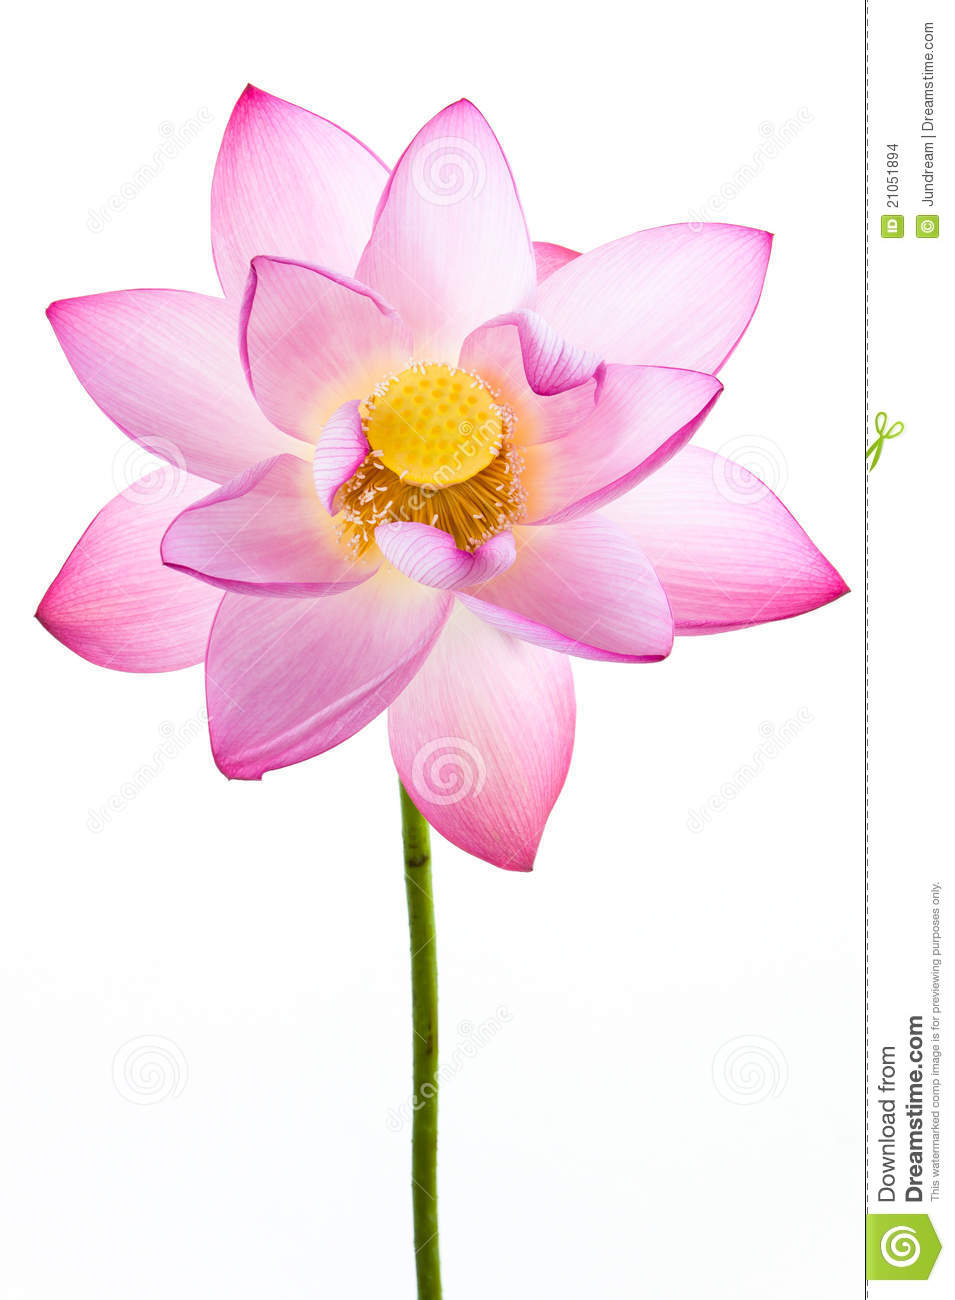 Pink water lily flower lotus and white backgroun stock photo pink water lily flower lotus and white backgroun izmirmasajfo